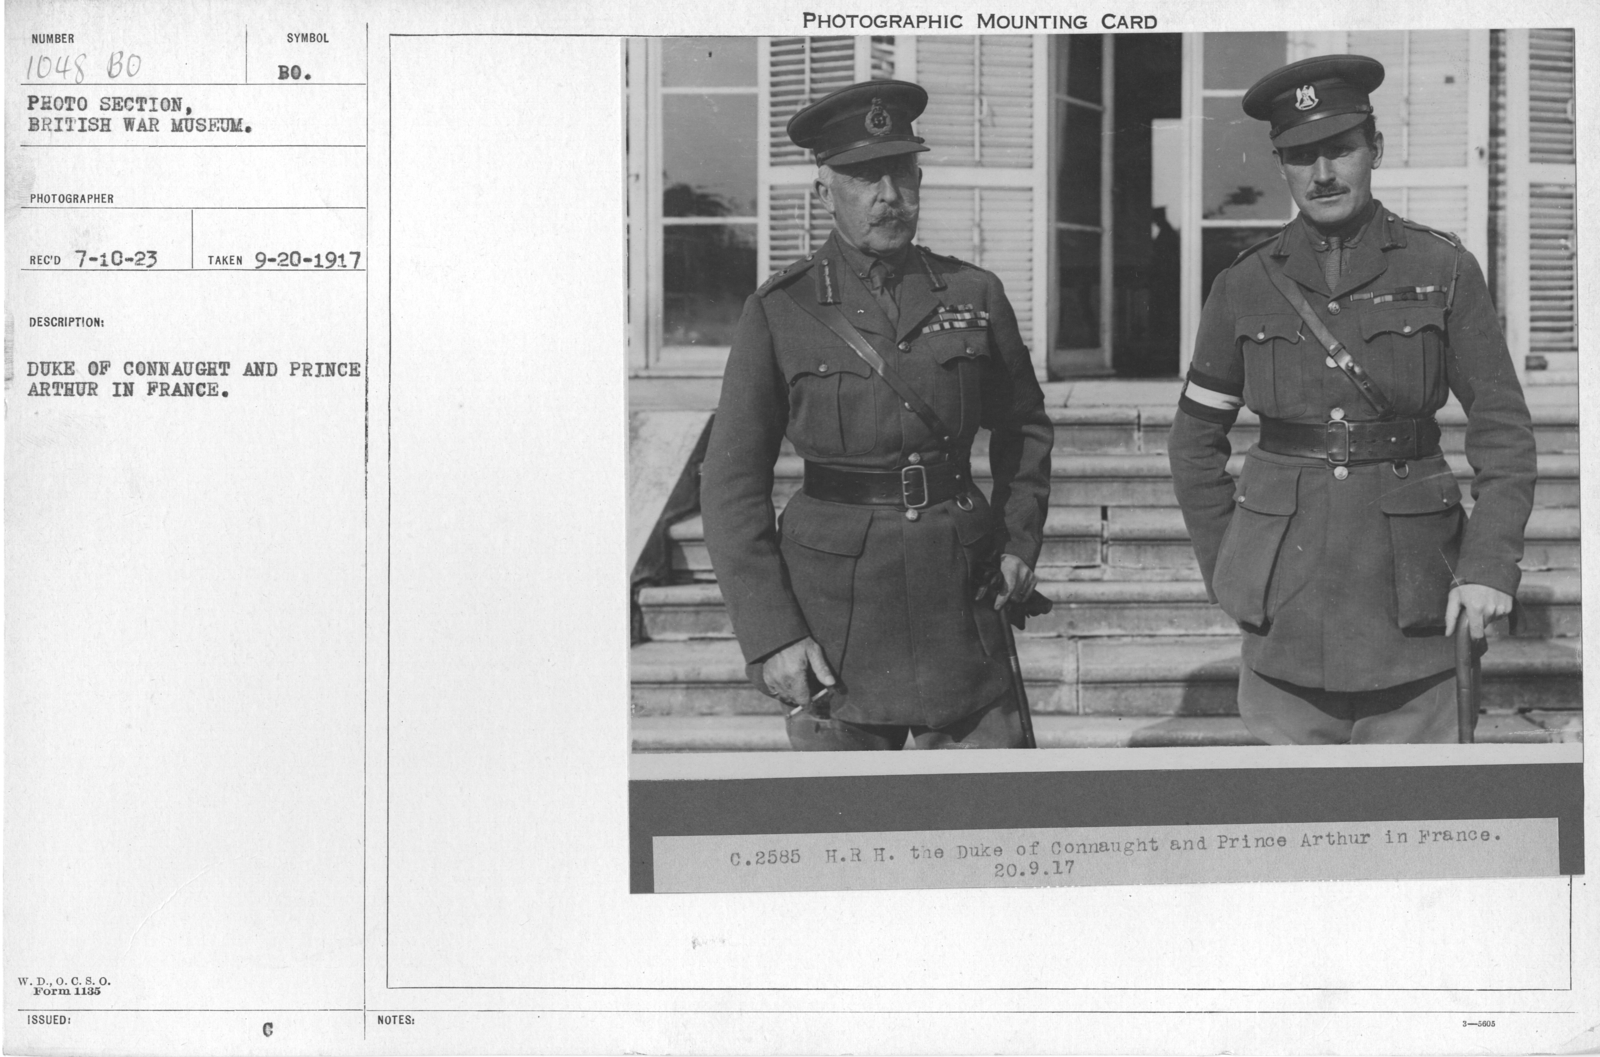 Duke of Connaught and Prince Arthur in France